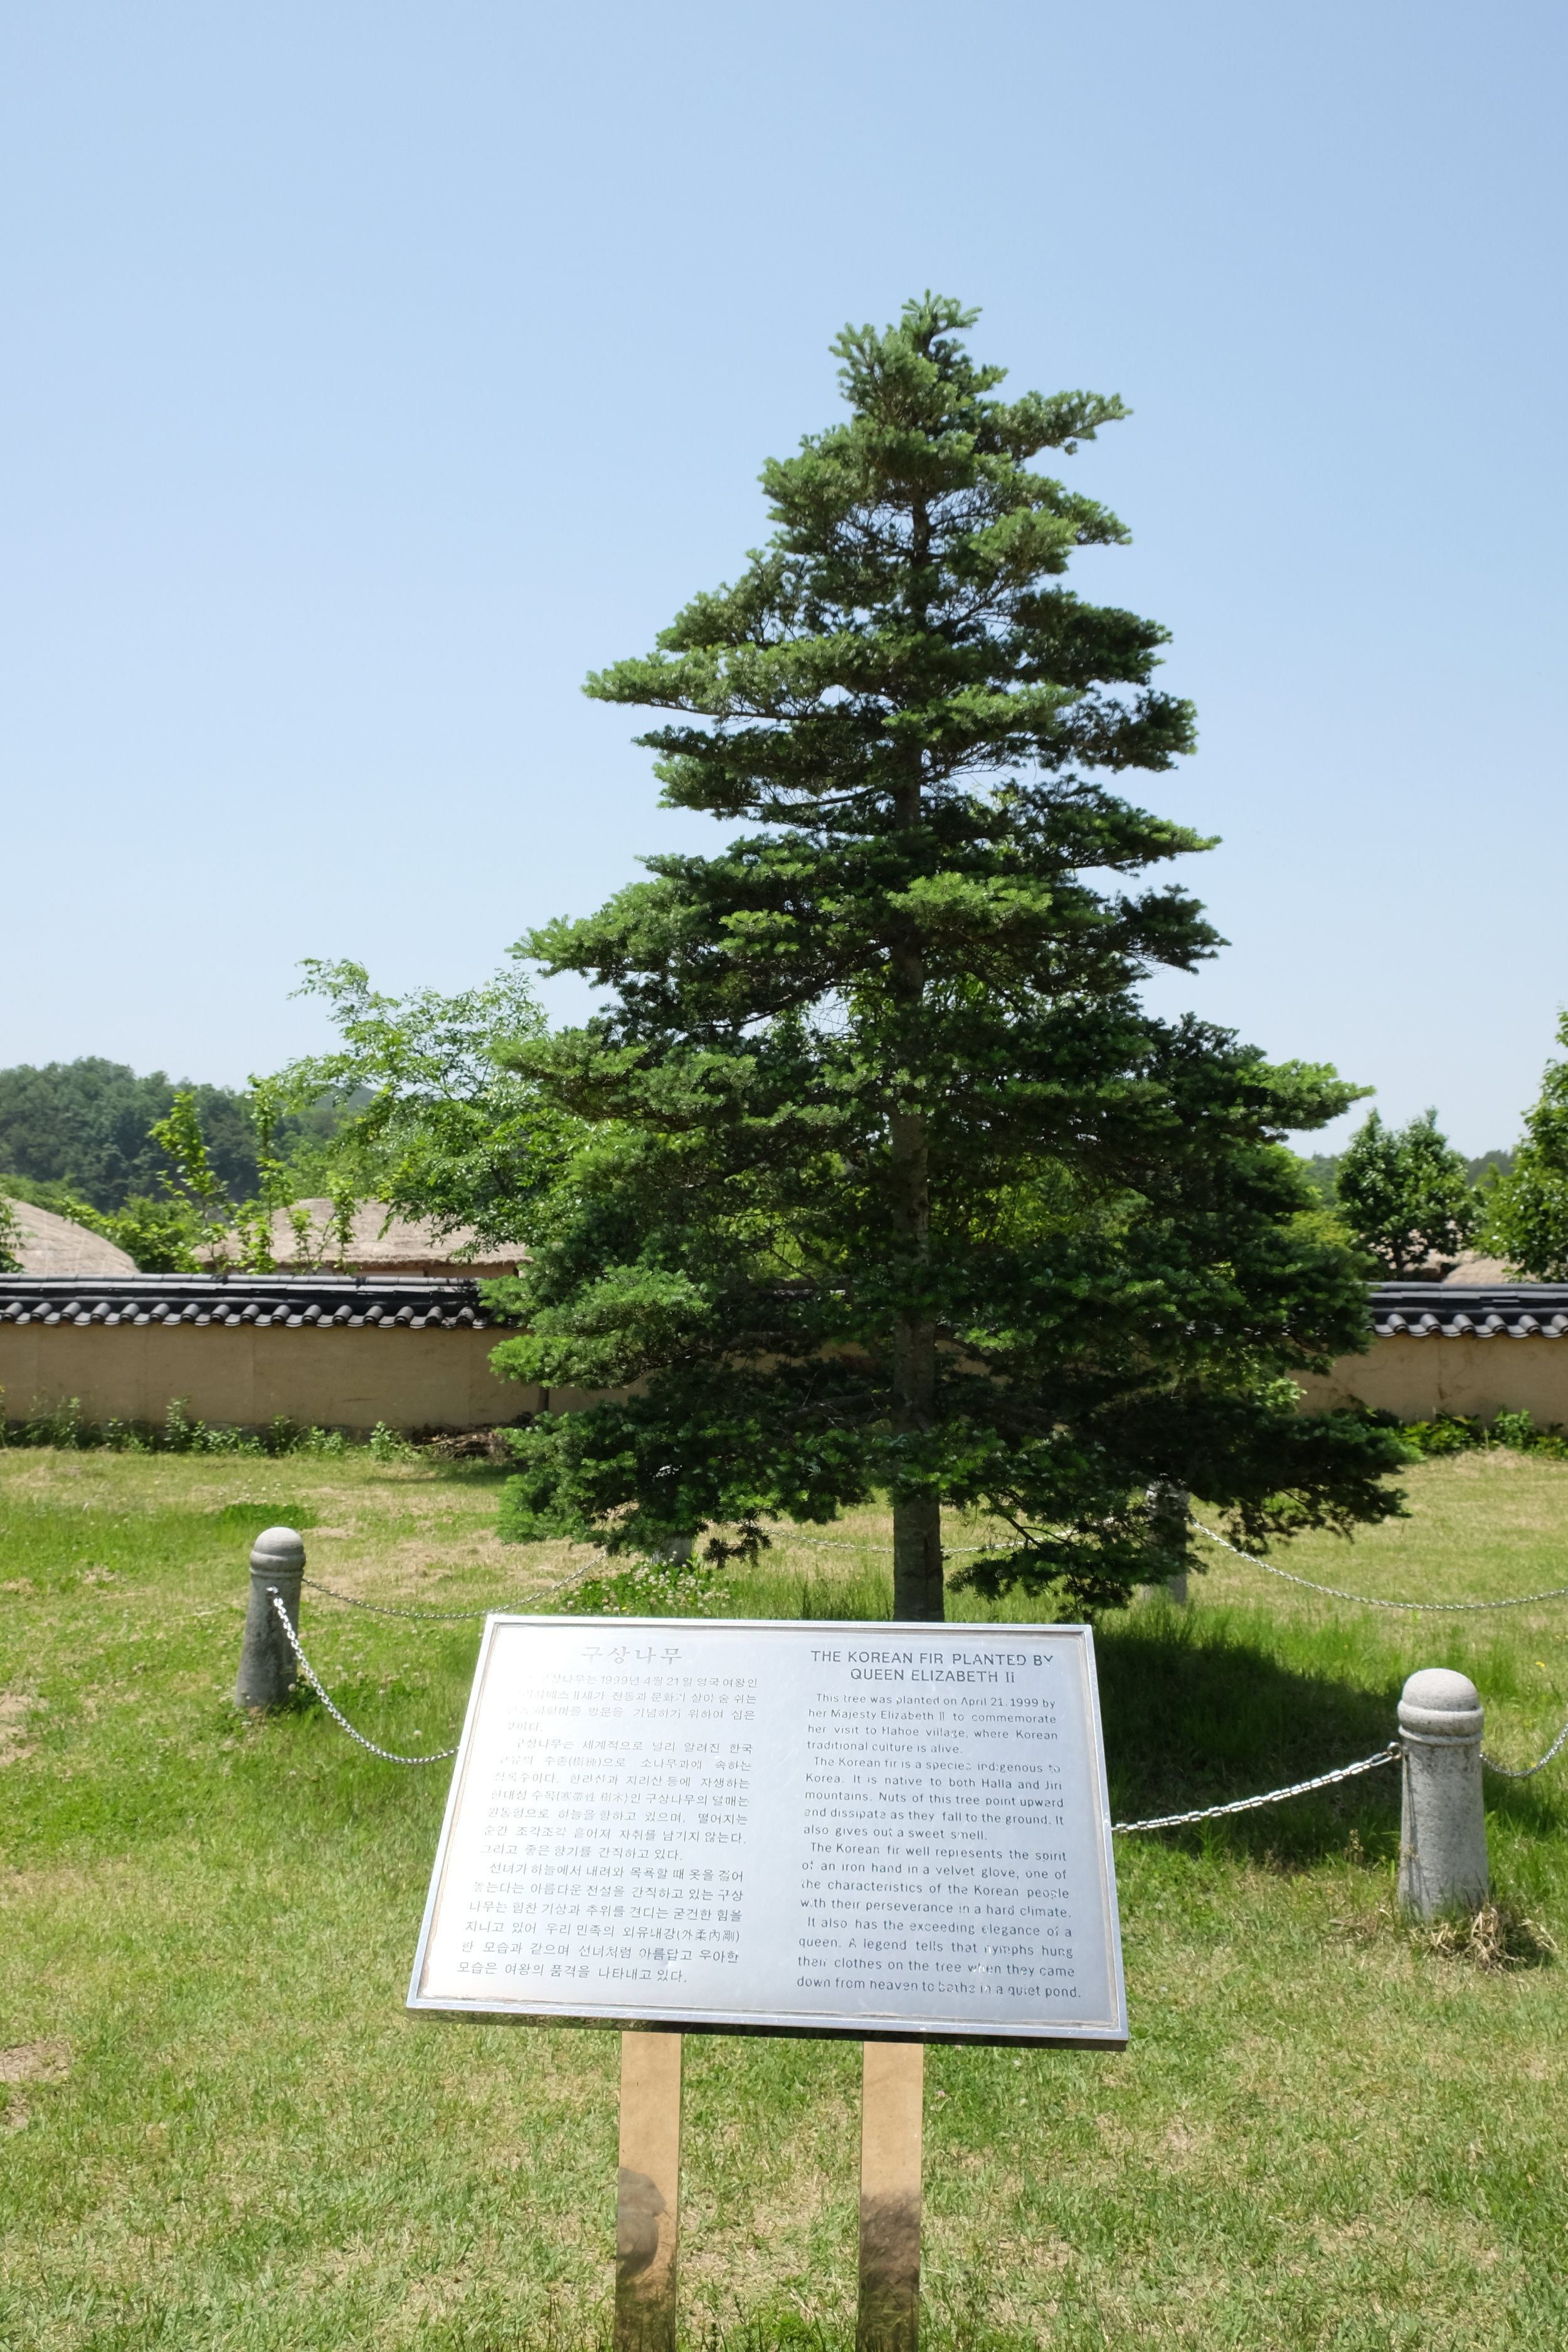 This tree was planted on April 21, 1999 by Queen Elizabeth II to commemorate her visit to Hahoe Village. The Korean fir tree is a species indigenous to Korea. It is native to both Halla and Jiri mountains. Nuts of this tree point upward and dissipate as they fall to the ground.